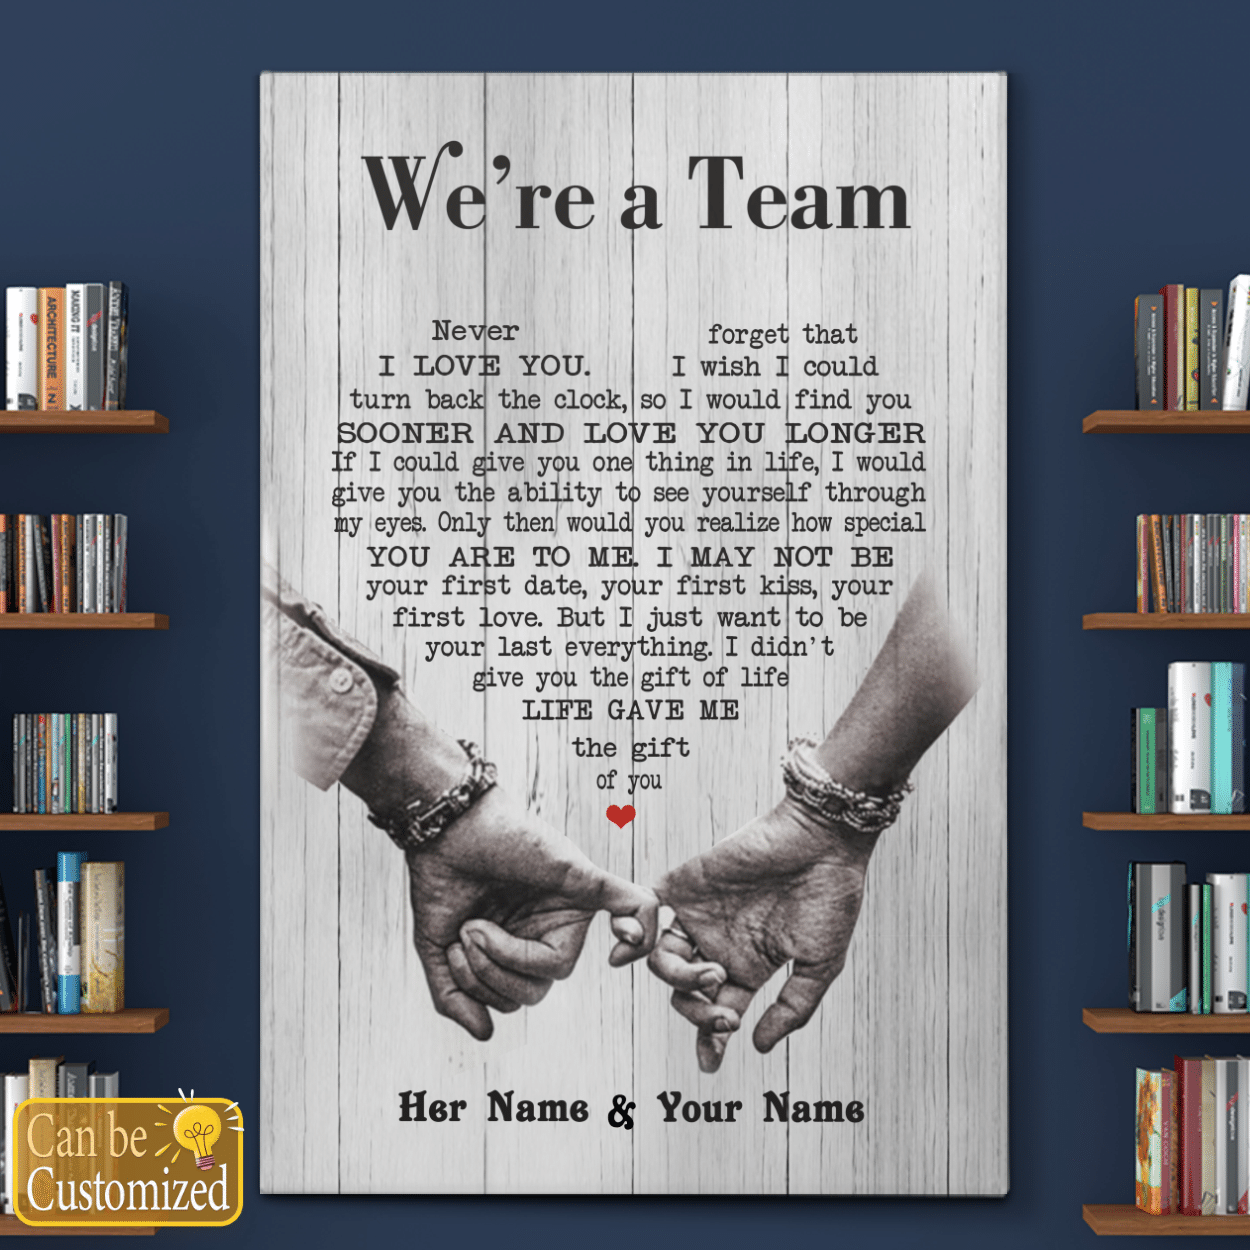 WE ARE A TEAM SOONER AND LOVE YOU LONGER LOVERS POSTER